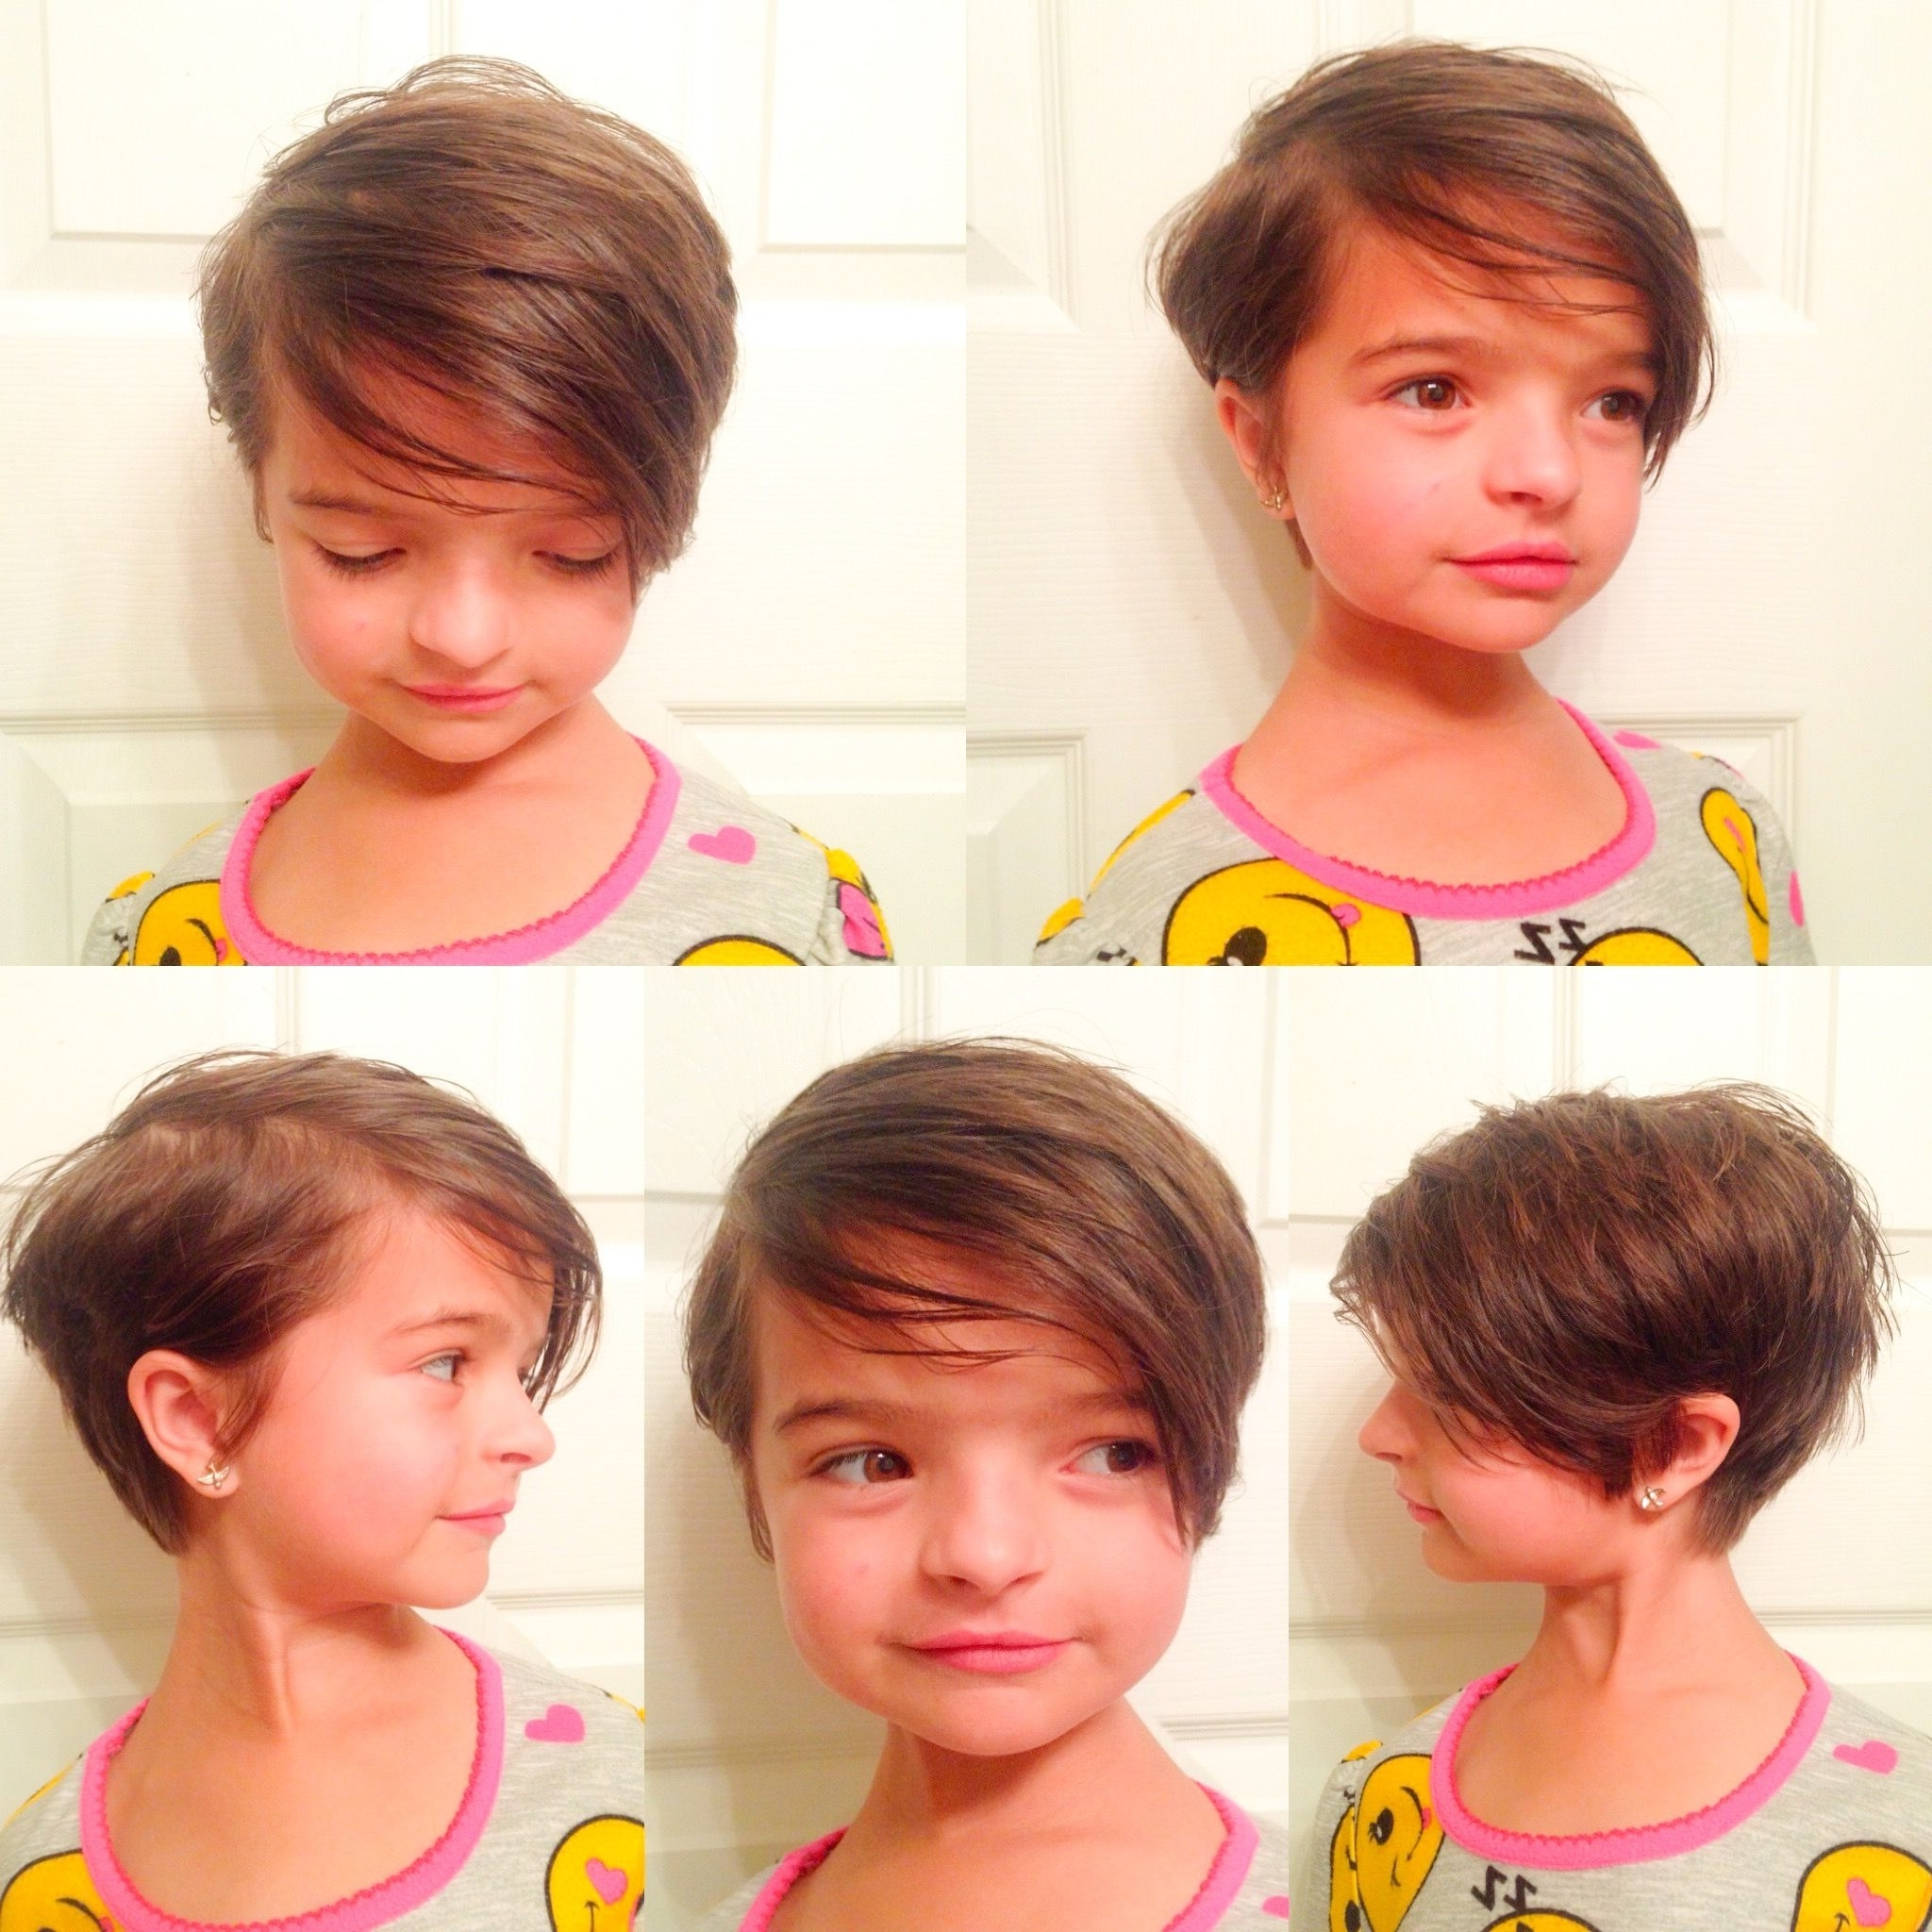 Explore Photos Of Kids Pixie Hairstyles Showing 12 Of 15 Photos